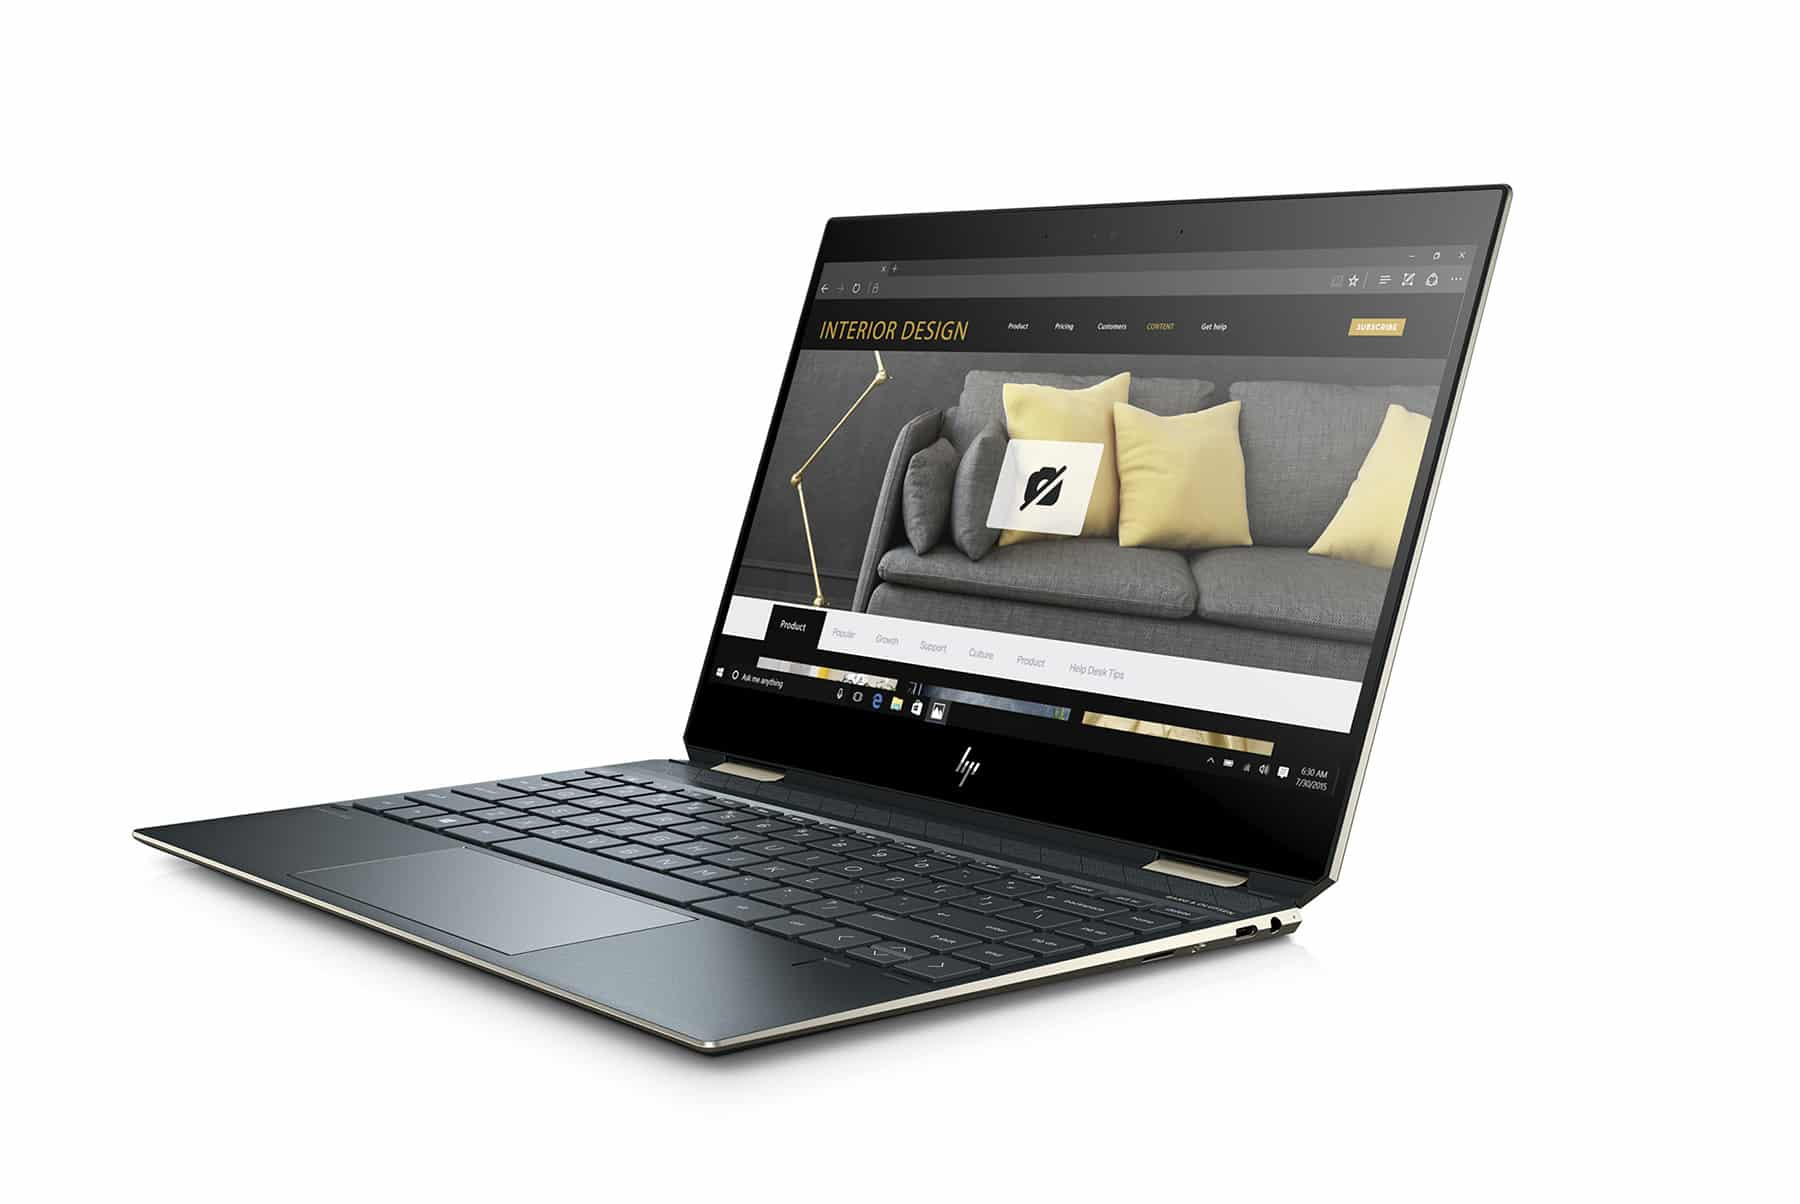 Spiderman13 WLAN PoseidonBlue T IRcam nonODD FPR Hero FrontLeft PrivCamEnabled - เผยโฉม HP Spectre x360 ในรูปแบบ Convertible PC รุ่นล่าสุด